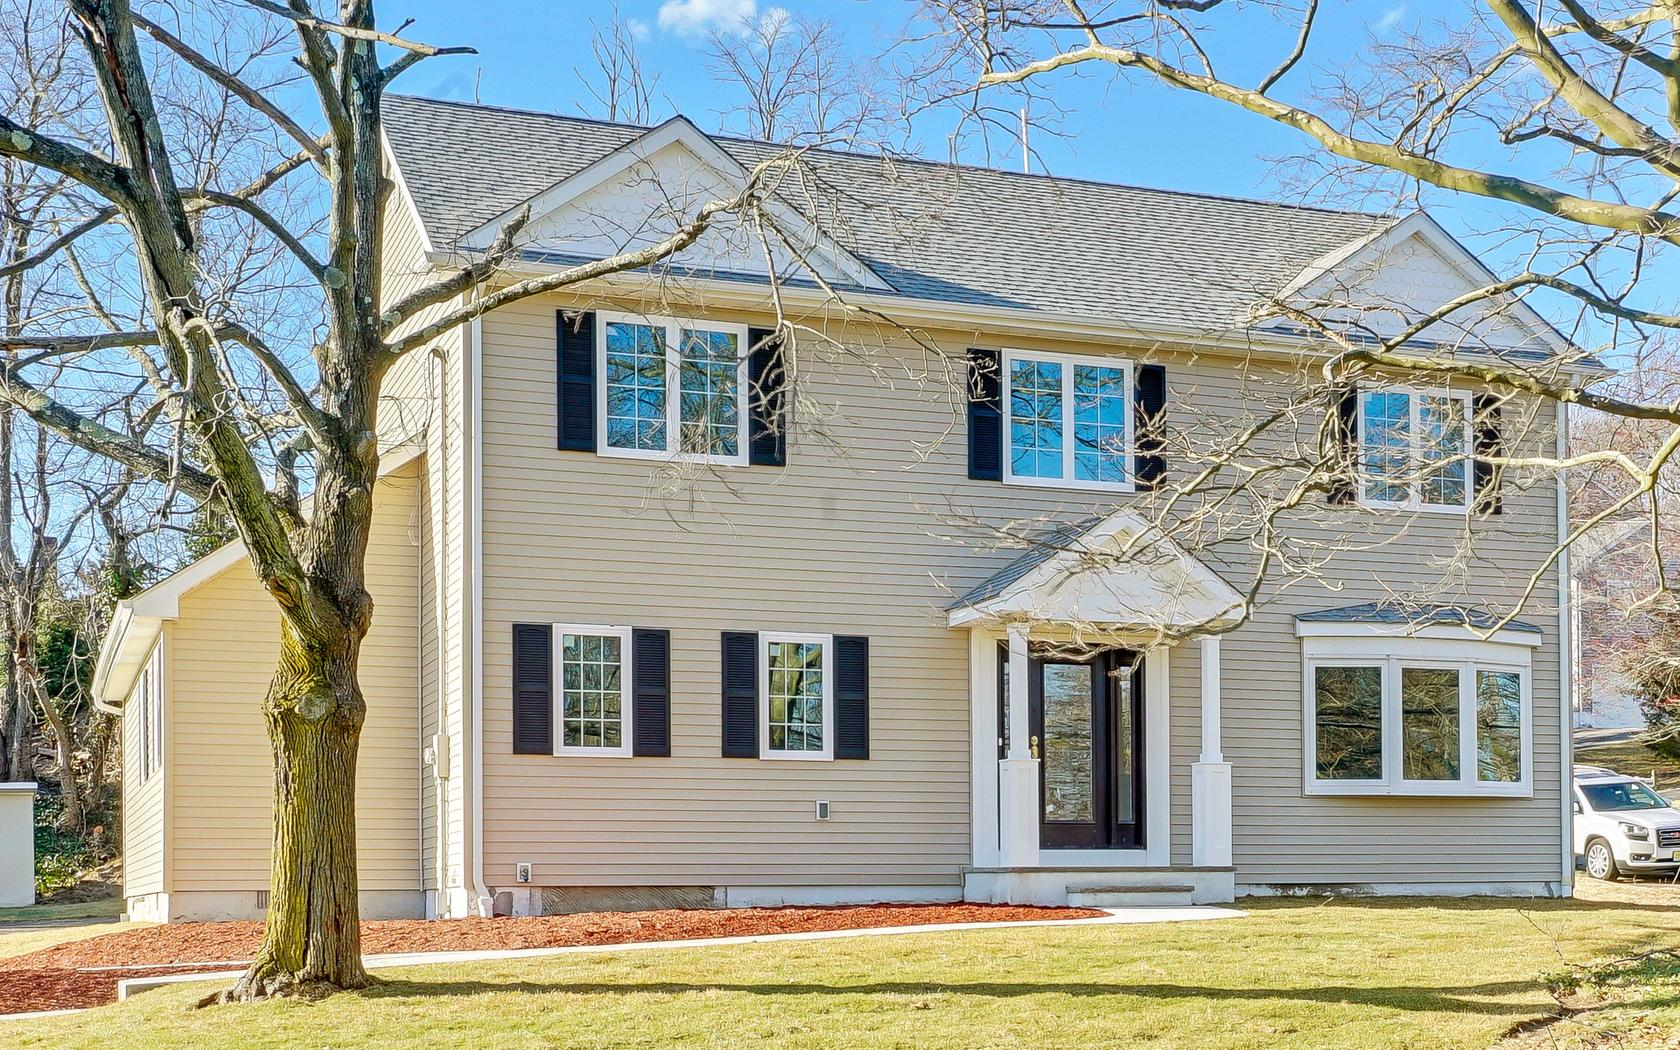 Single Family Home for Sale at Beautifully Renovated Colonial 1801 Allenwood Road Wall, New Jersey 07719 United States